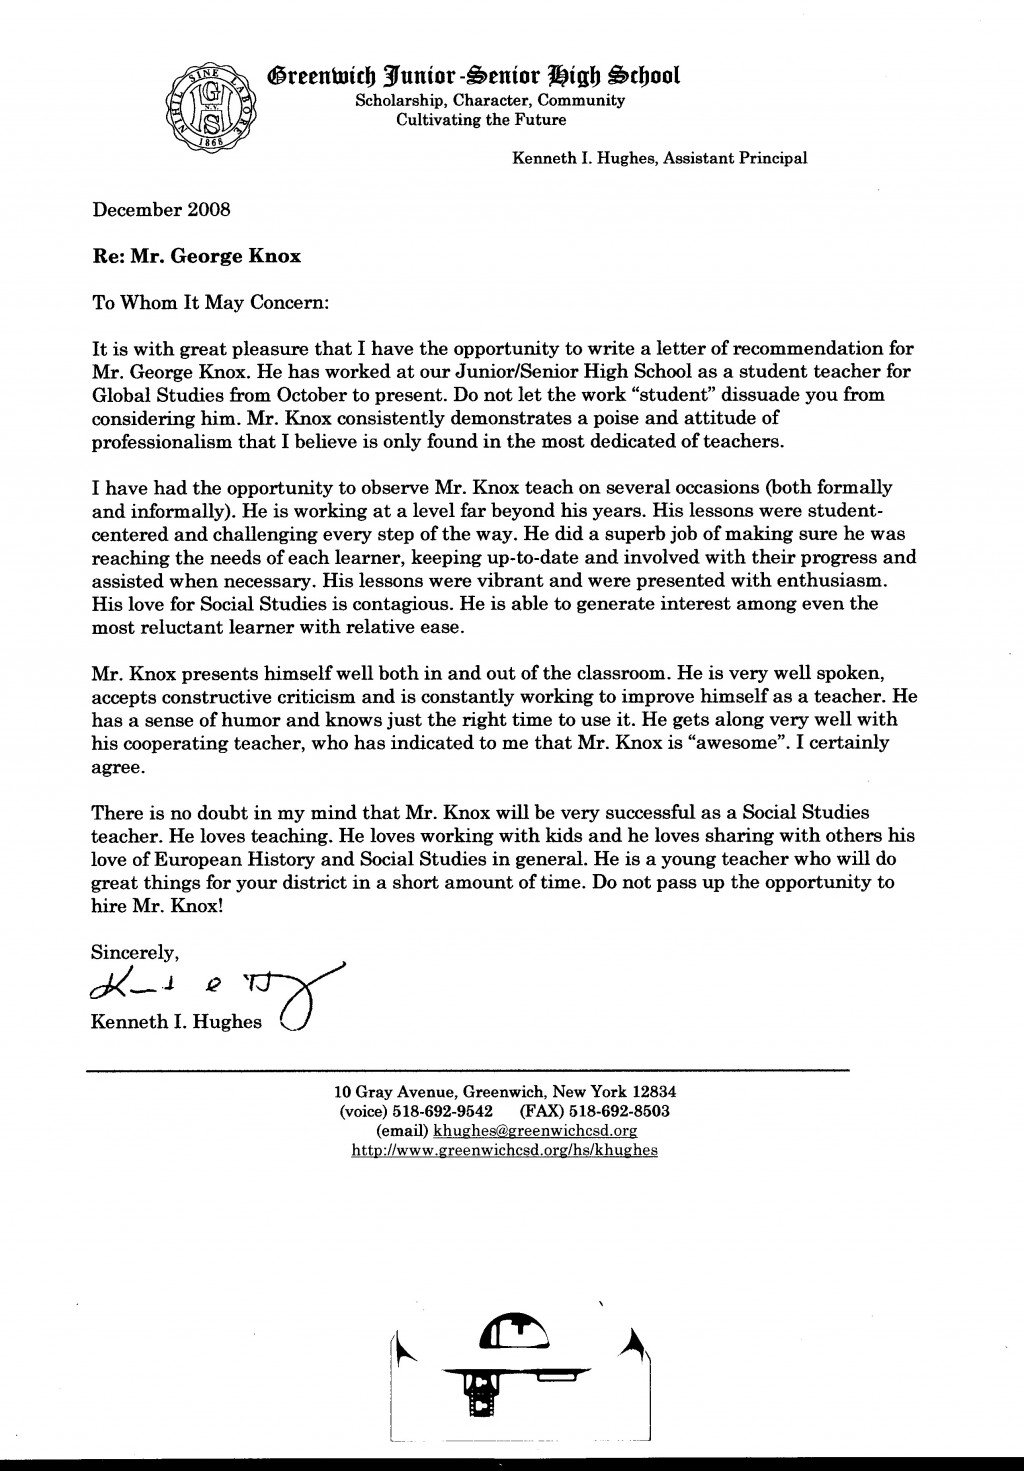 005 Essay Example High School Essays Proper Letter Format New College Scholarship Wri No Scholarships For Students Free Contest Examples Canada Astounding Sample About Yourself Admission Large